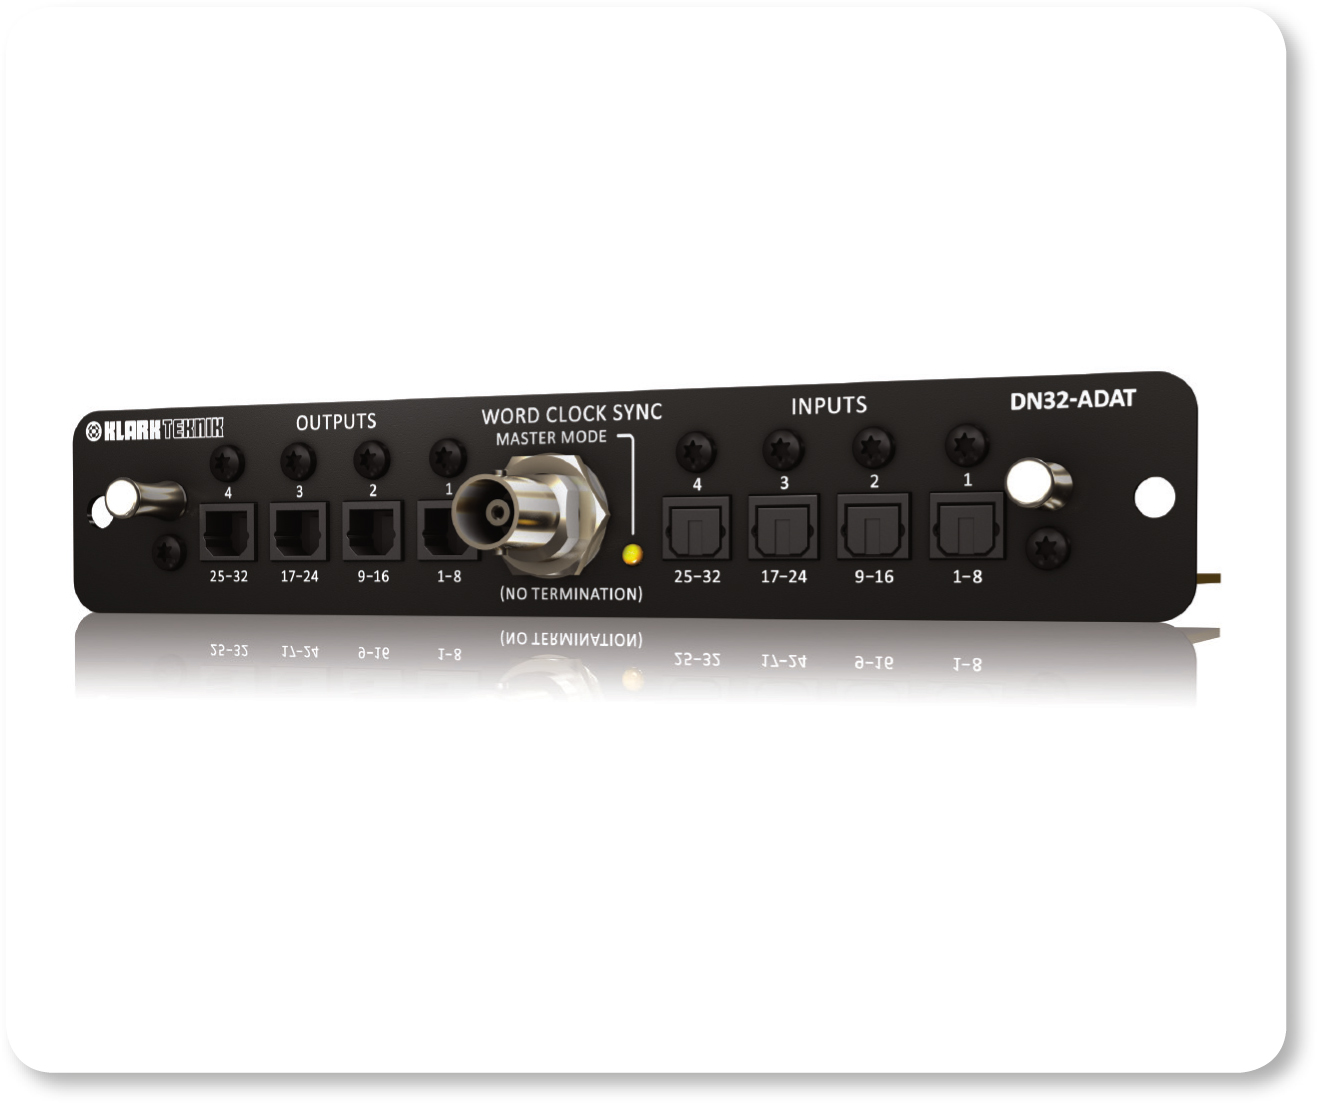 Midas M32 Digitalmischpult Download Edison 5 Multimedia Lab For Exploring Electronics And High Performance 32 Channel Adat Expansion Card